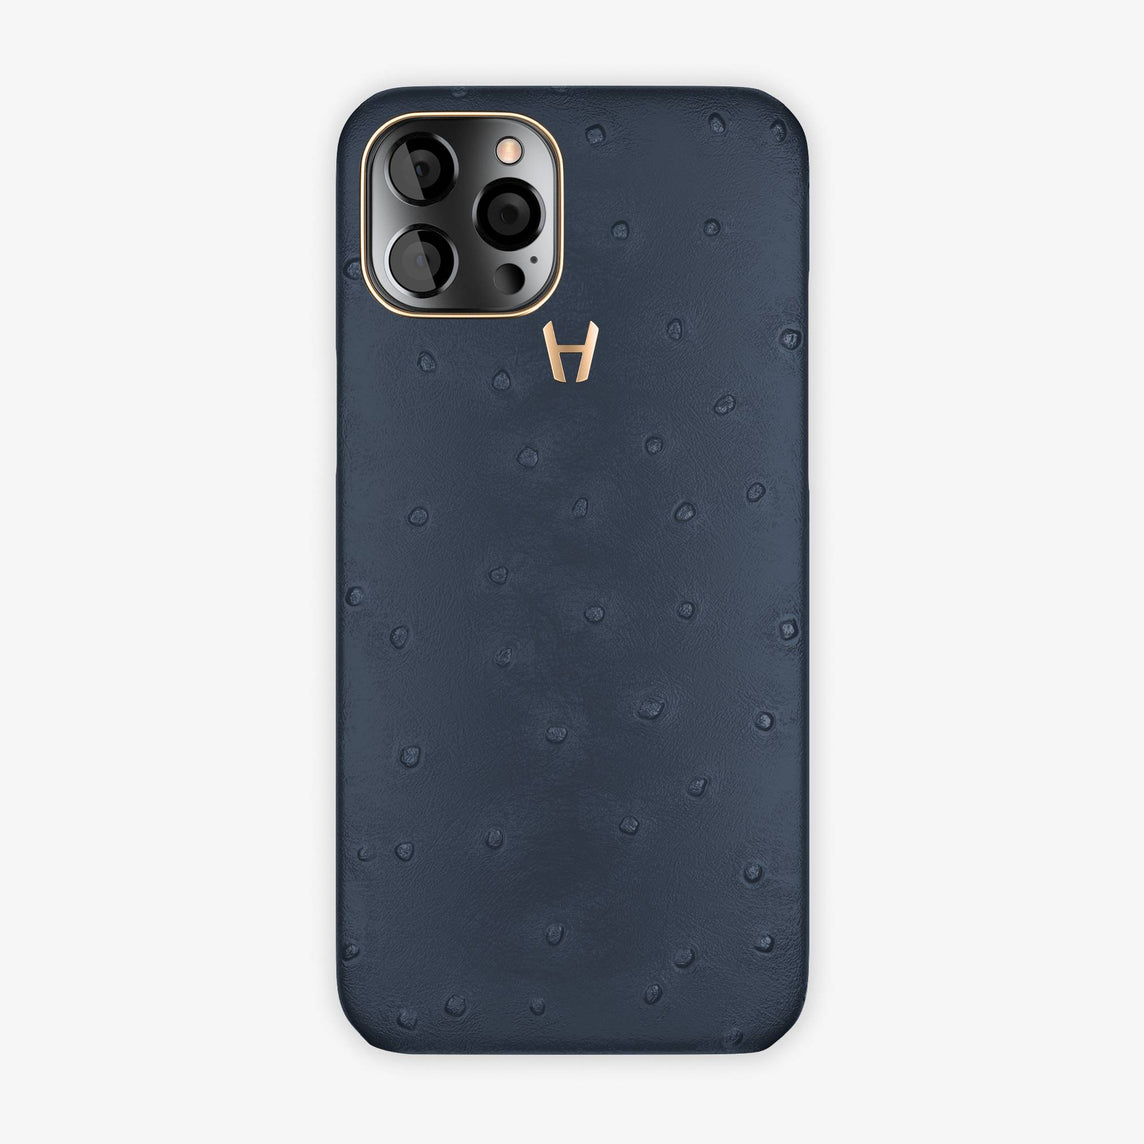 Ostrich Case iPhone 12 Pro Max | Navy Blue - Rose Gold